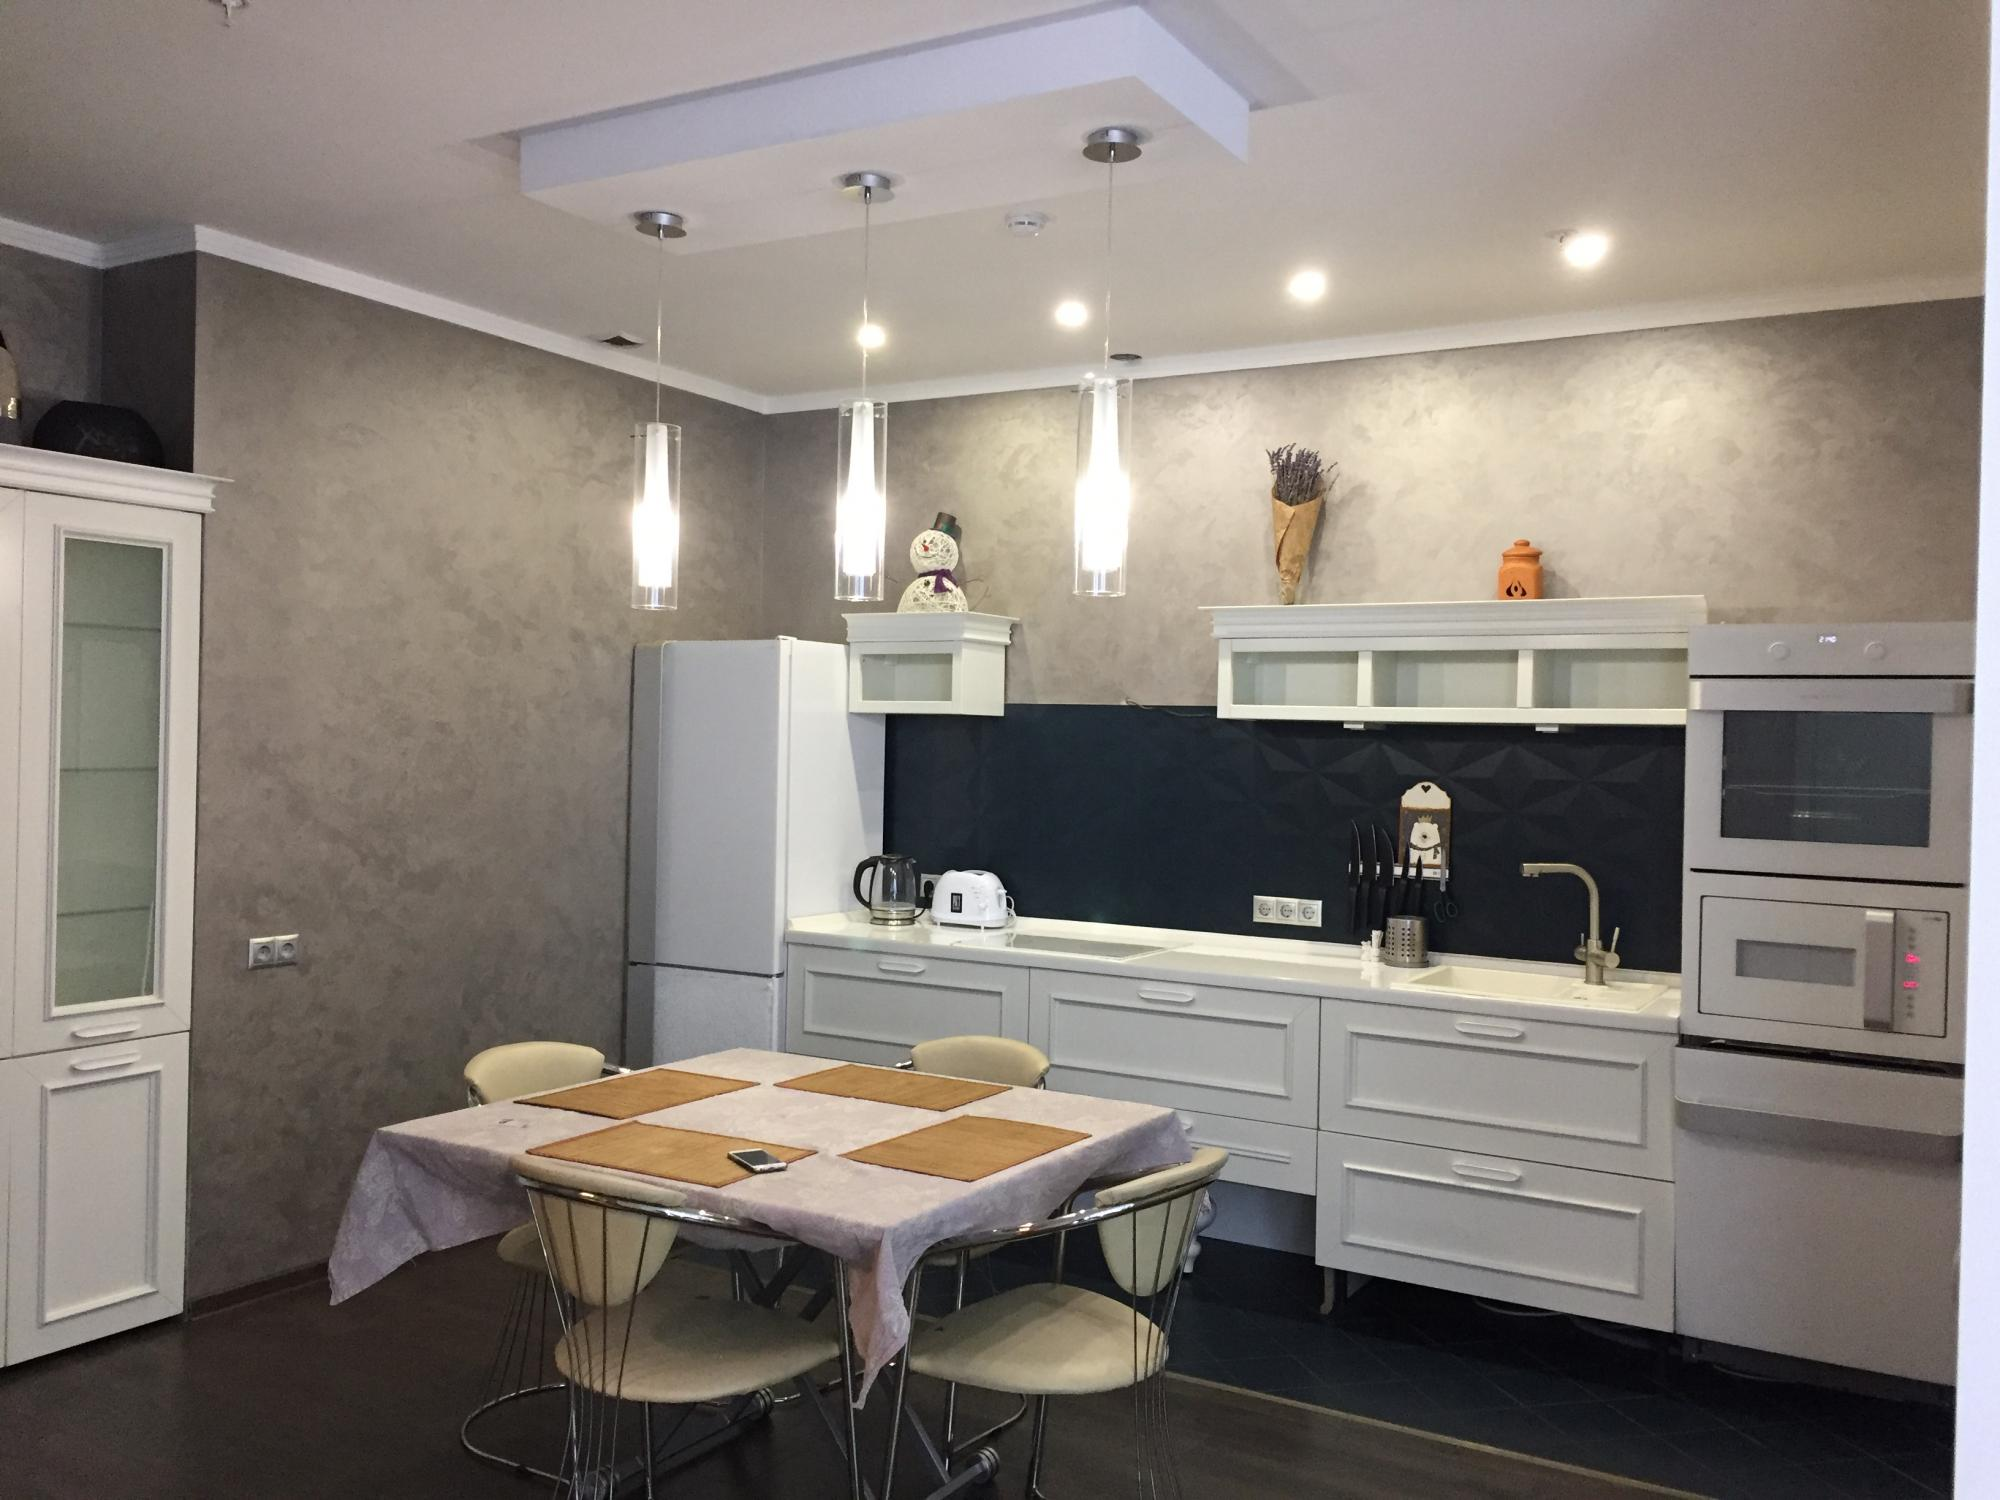 Apartment, 3 rooms, 68 m2 in Moscow 89160962328 buy 1